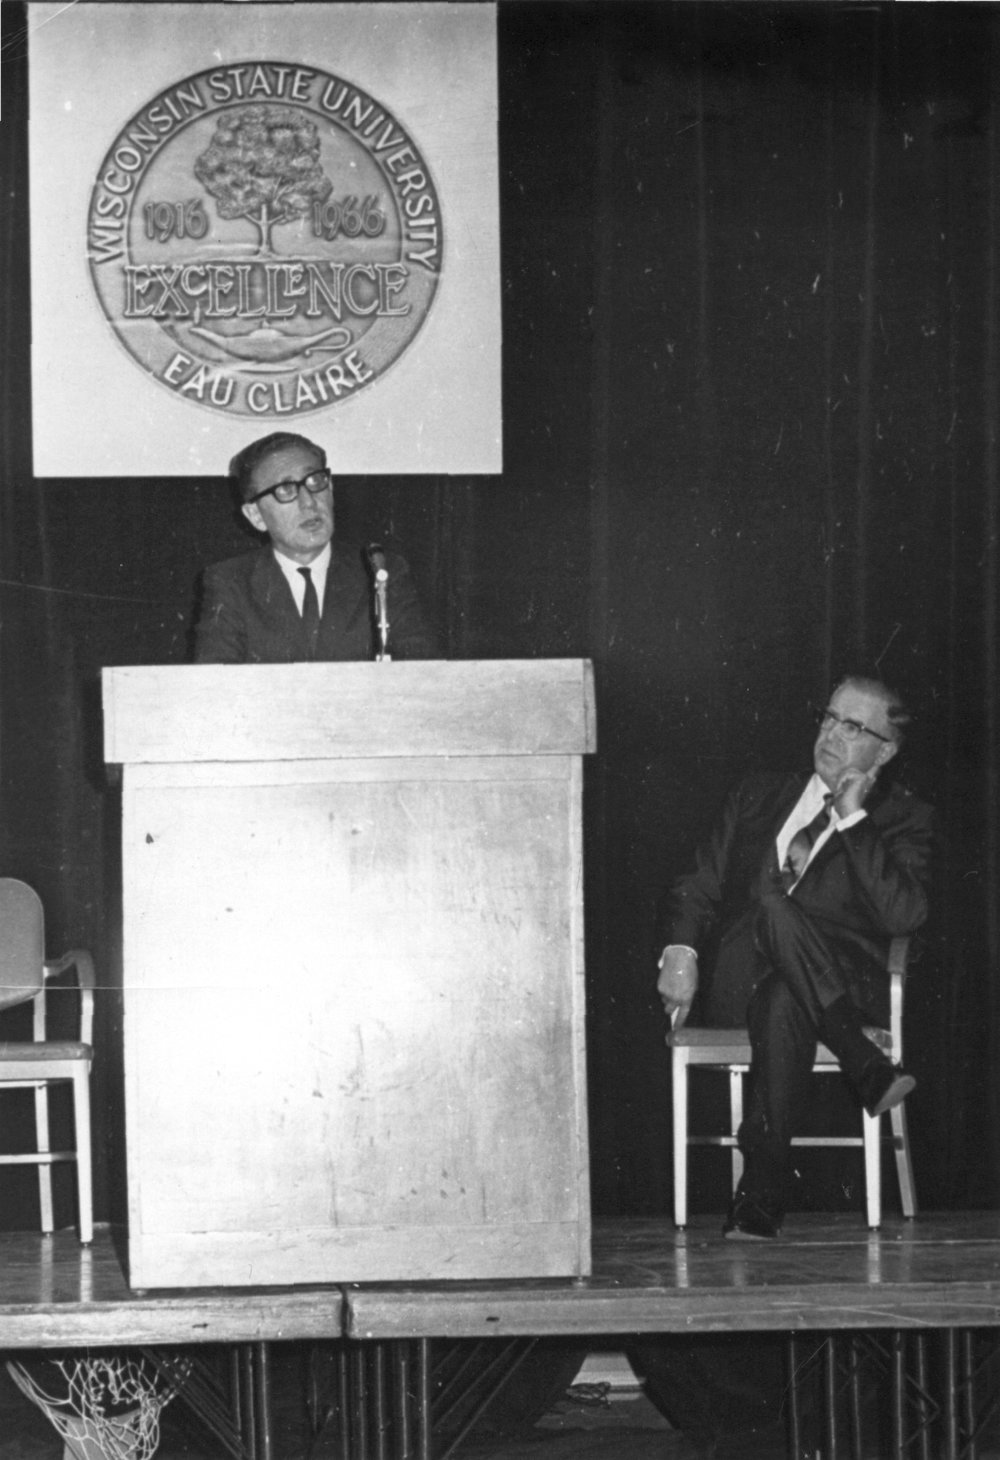 Henry Kissinger with Dr. Edward Blackorby (seated), 1967